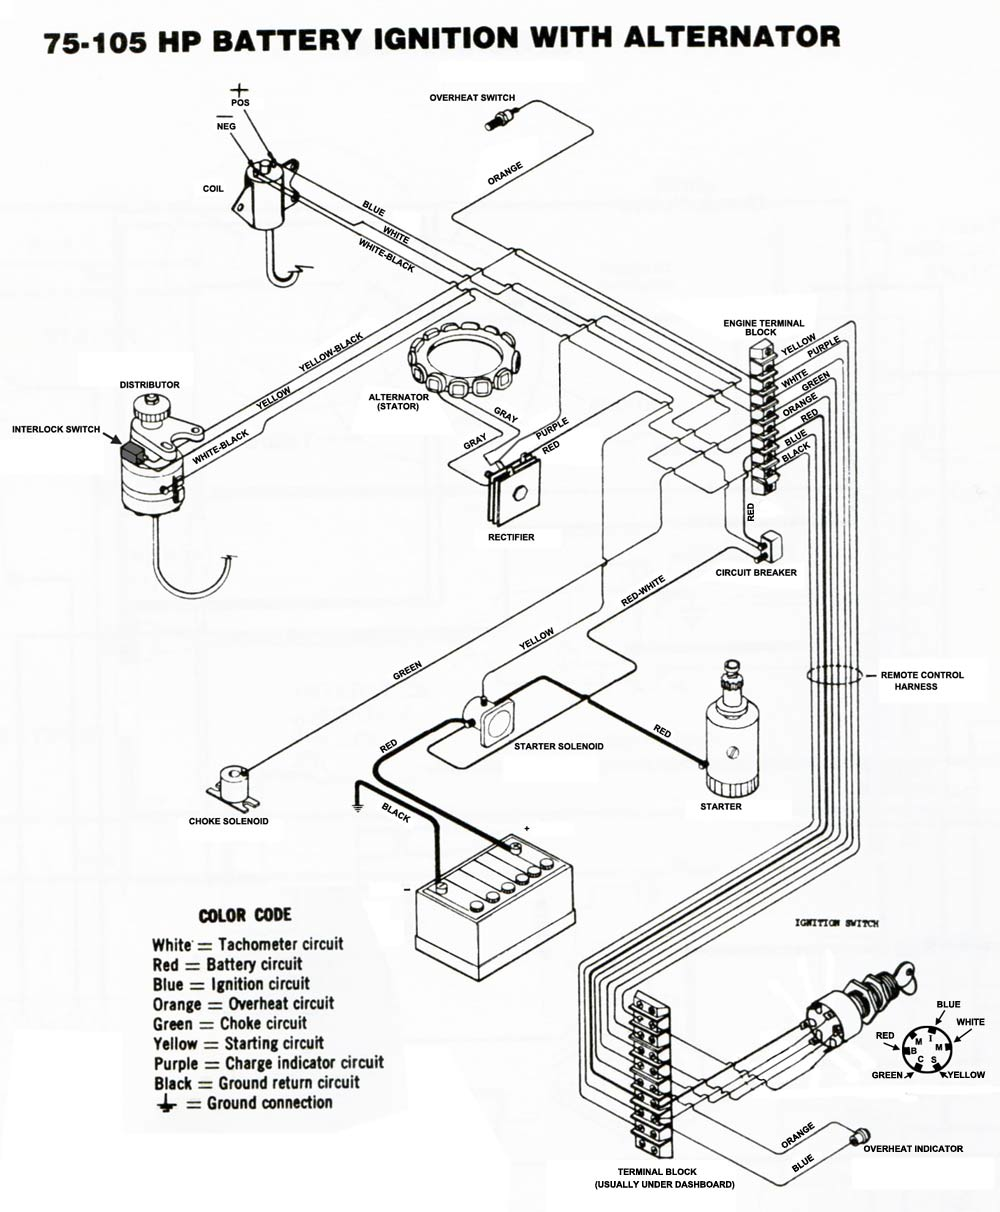 Wiring Diagram For 1976 Mercury 20Hp Outboard